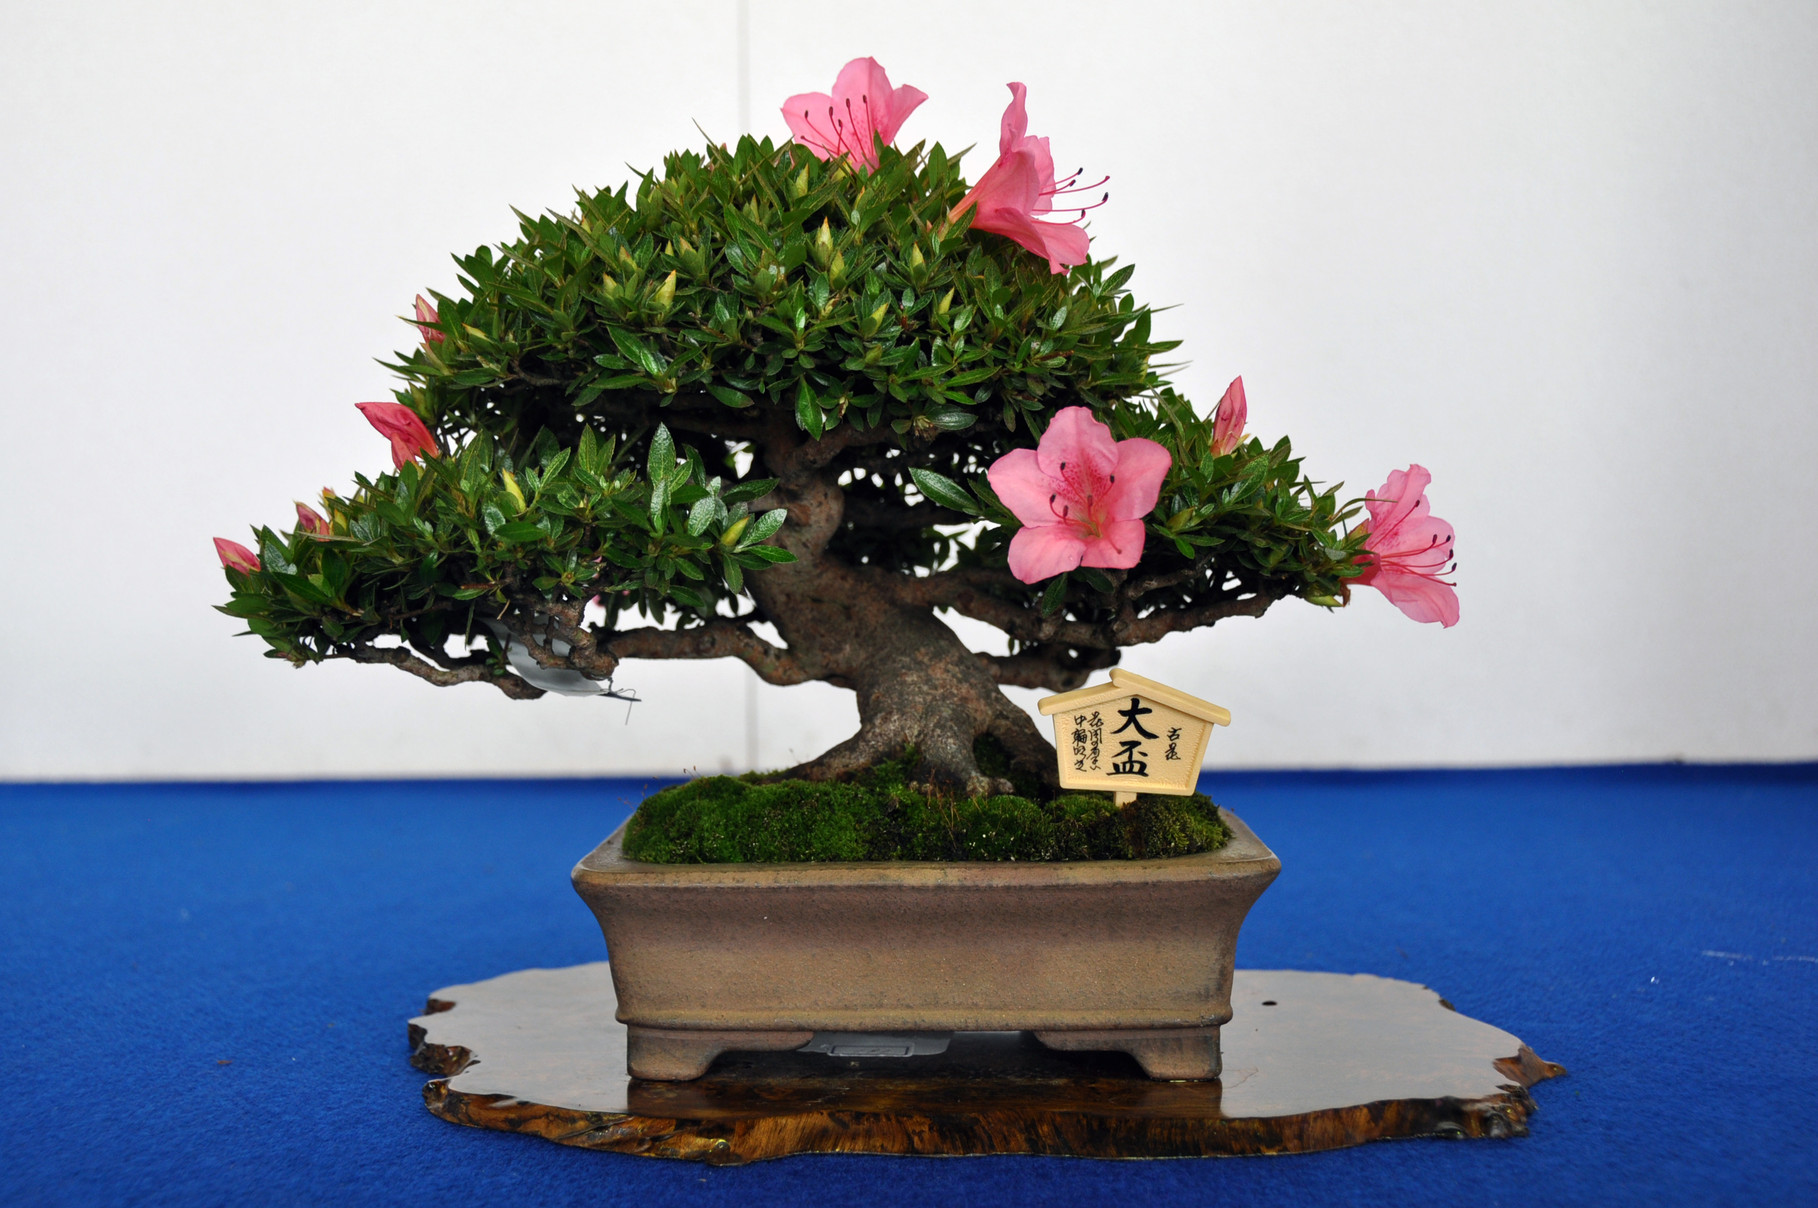 Minister of Agriculture, Forestry and Fisheries Award, Cultivar Kashiwa-no-Hoshi